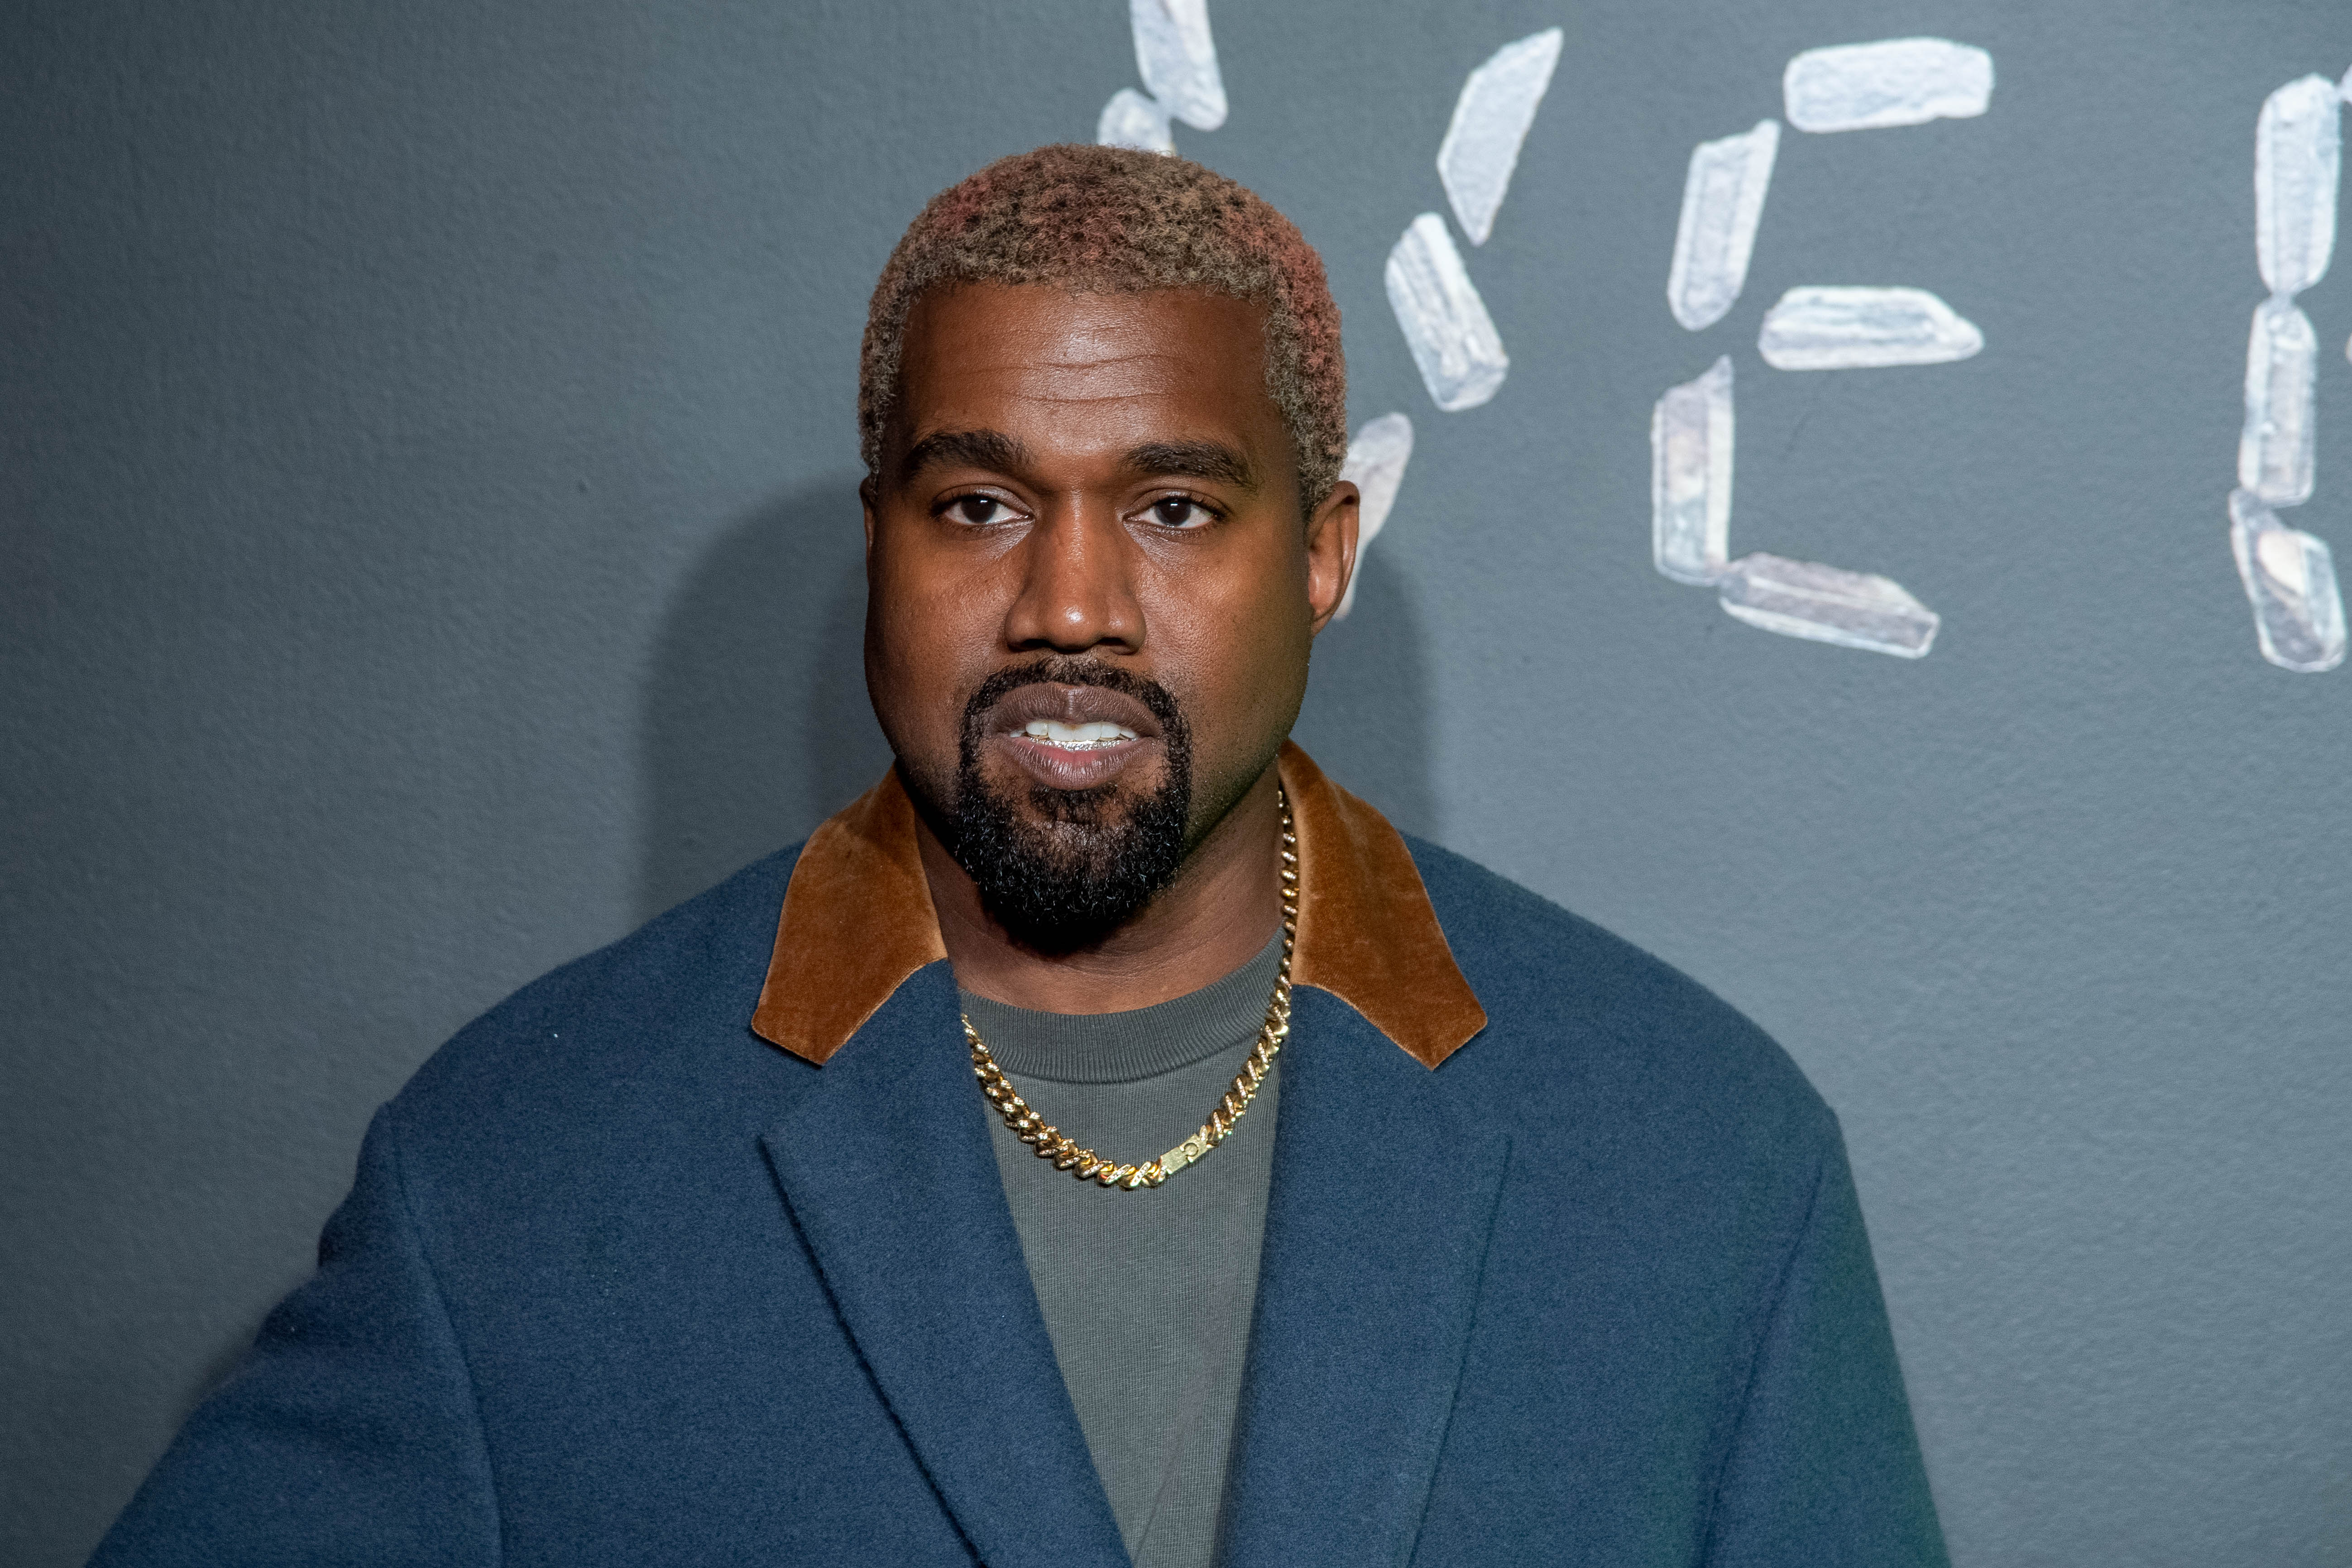 Kanye West To Build Low-Income Housing Inspired By Star Wars